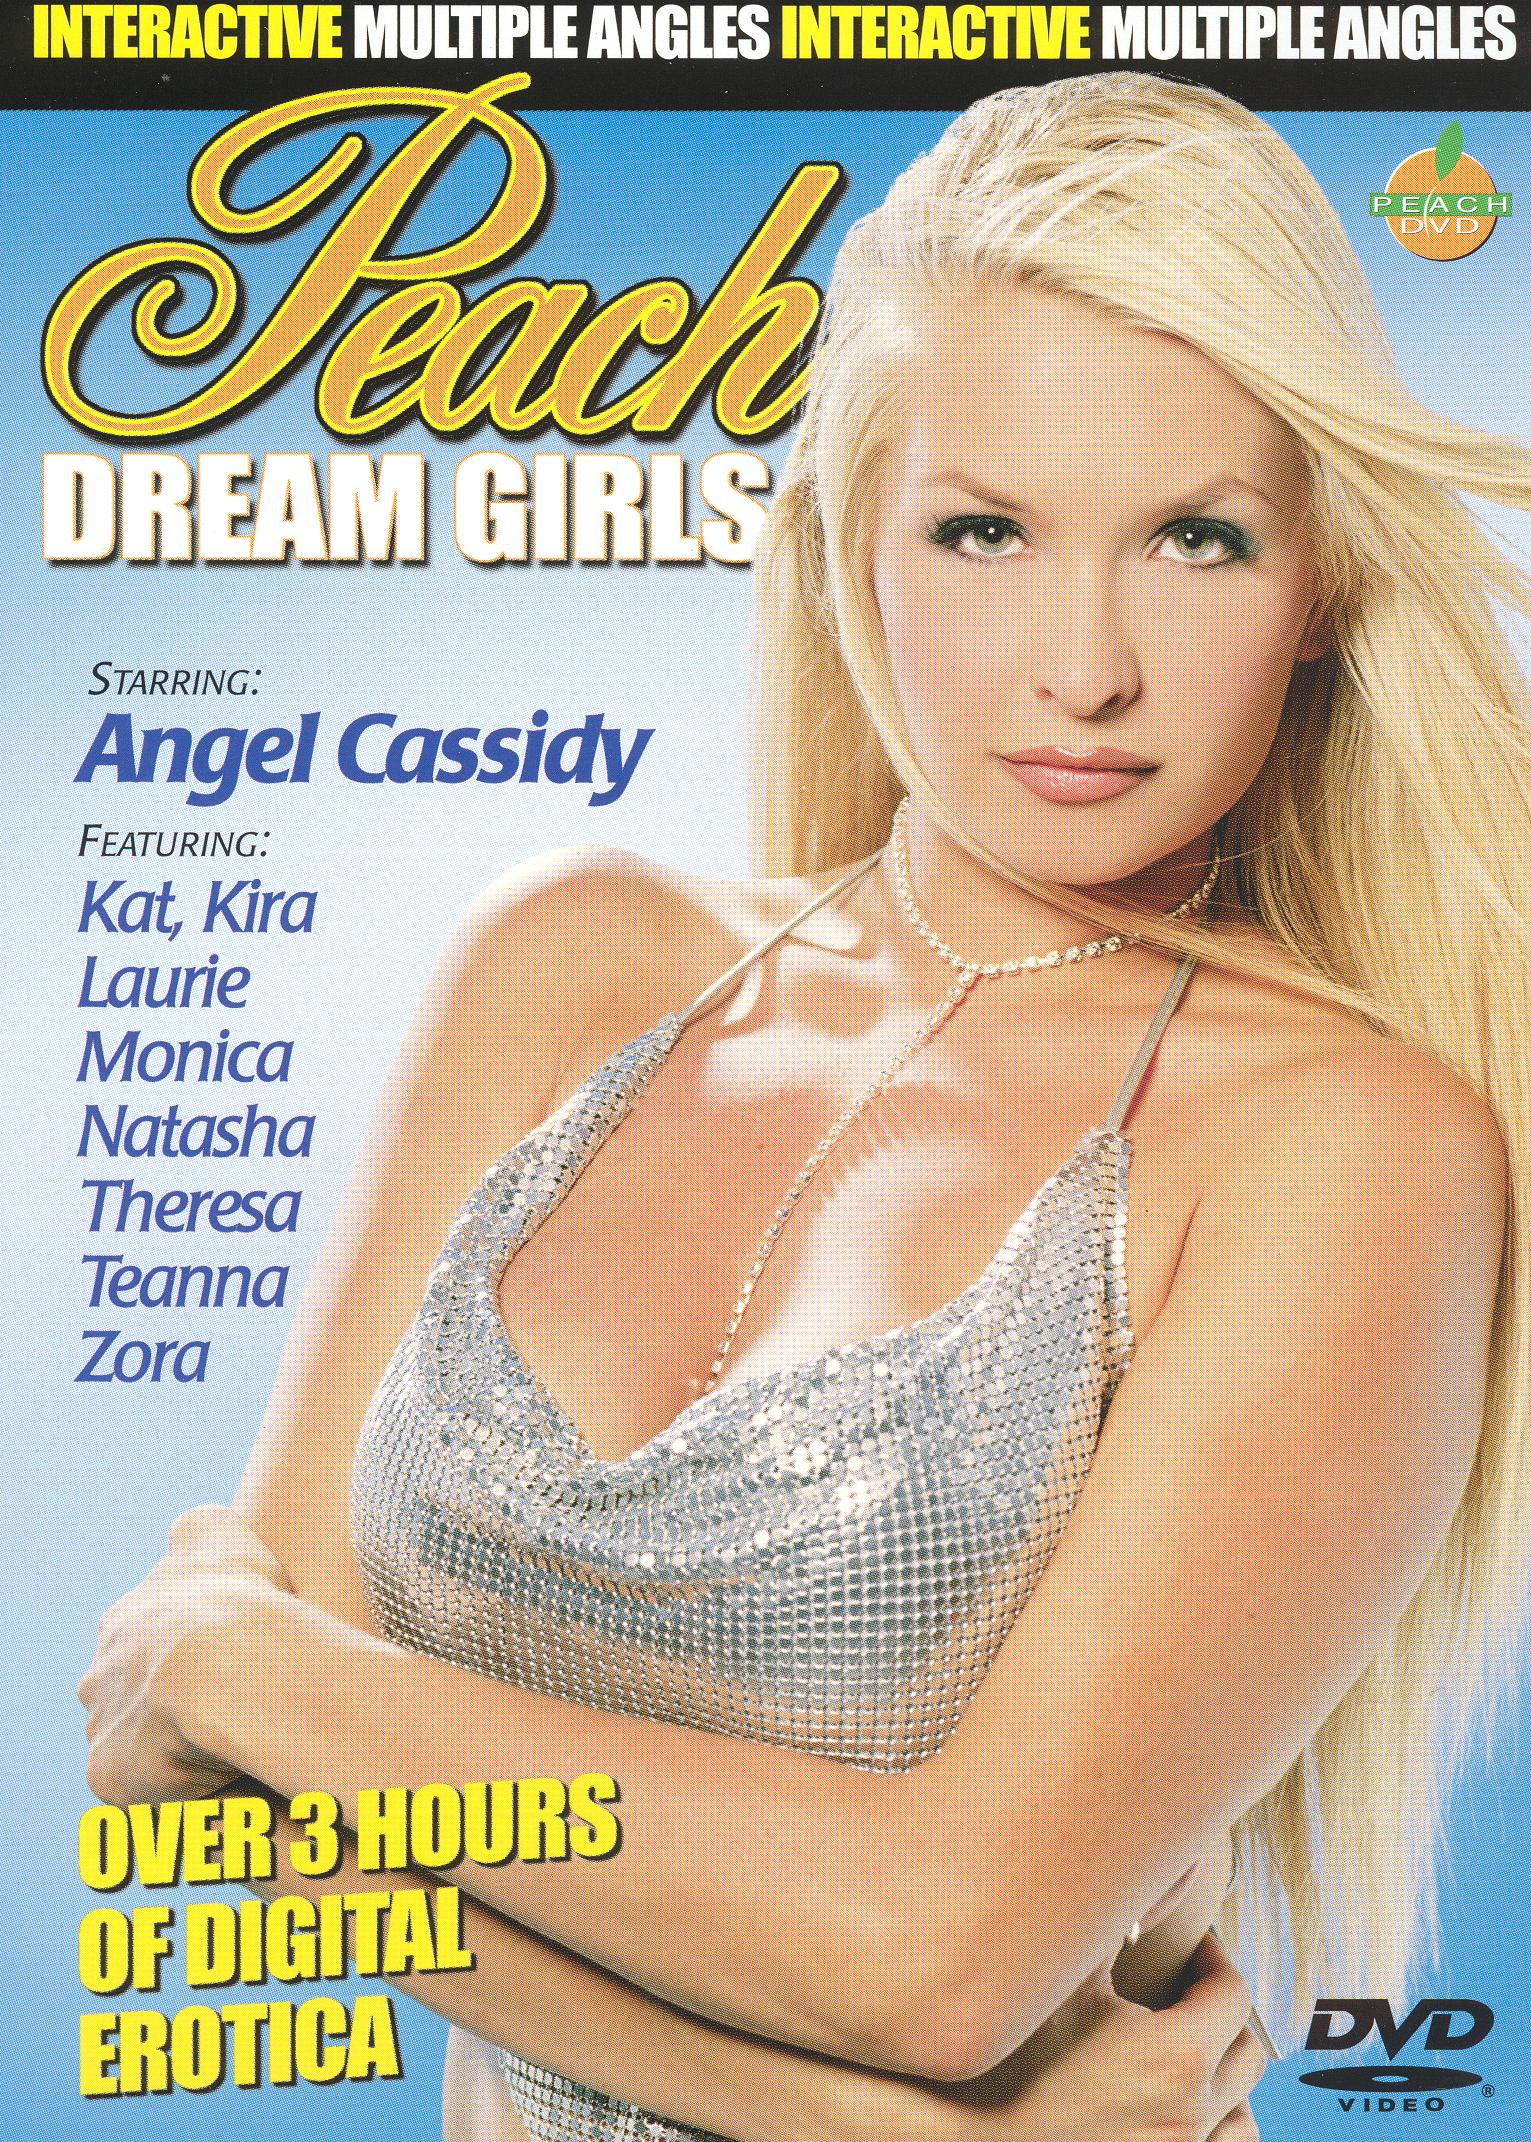 Peach Dream Girls: Angel Cassidy